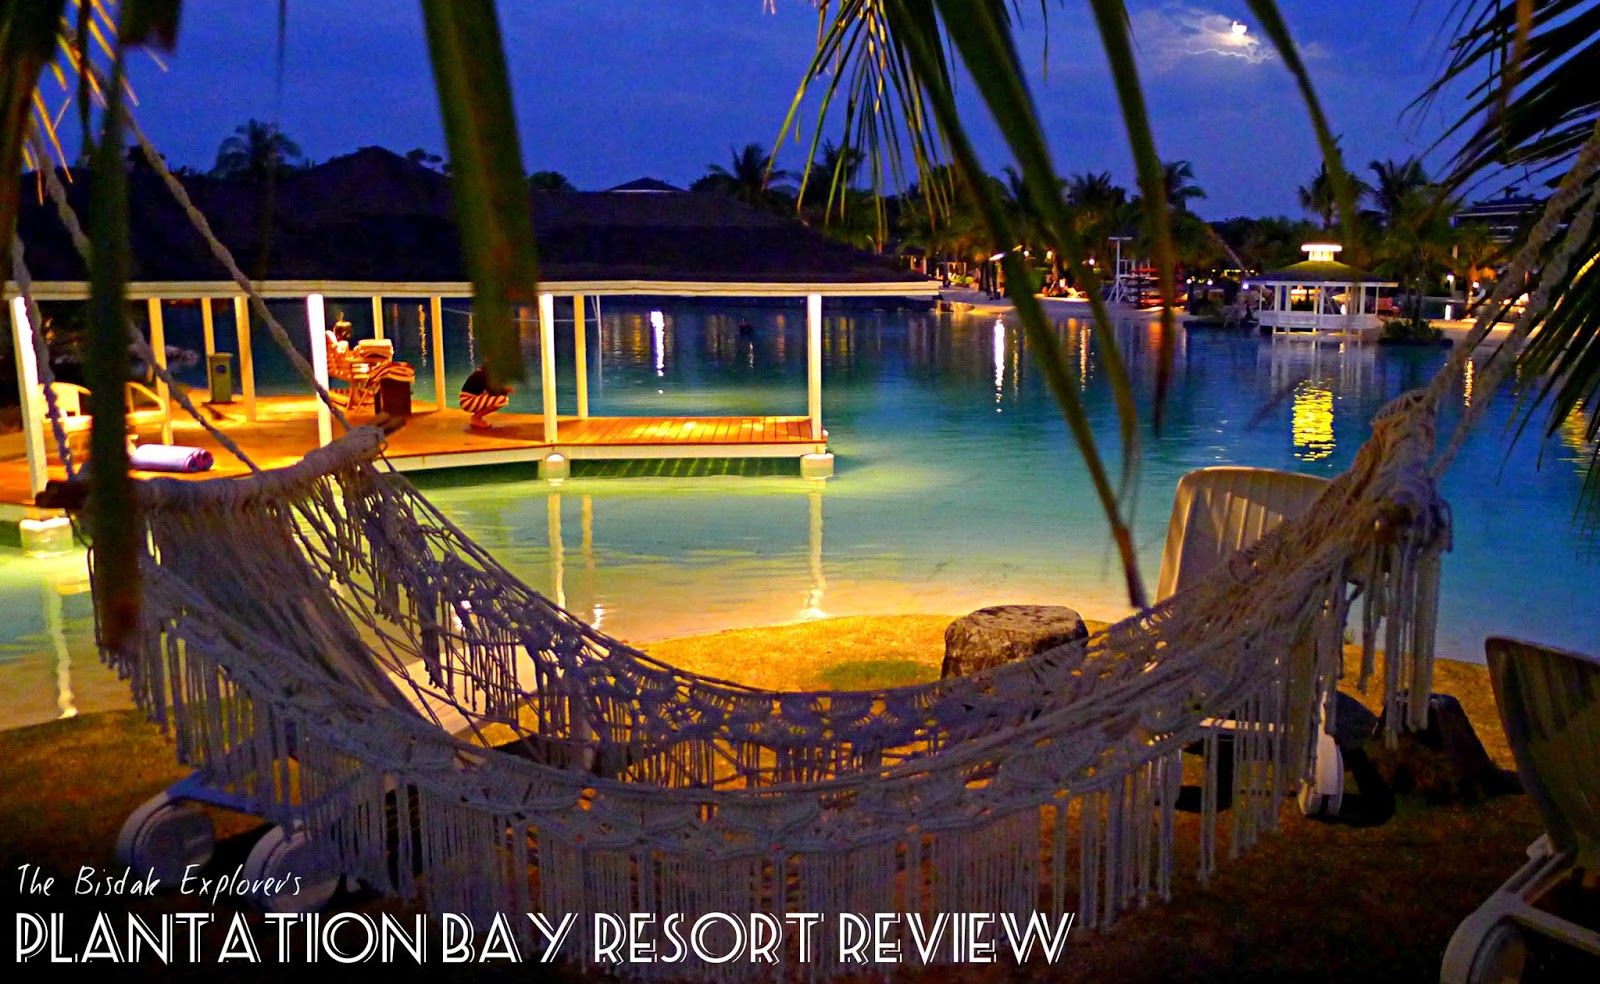 Plantation Bay Resort Is One Of The Most Iconic Resort That Is Deeply  Rooted In The Province Of Cebu. It Is Widely Known For Its Beautiful And  Gigantic ...